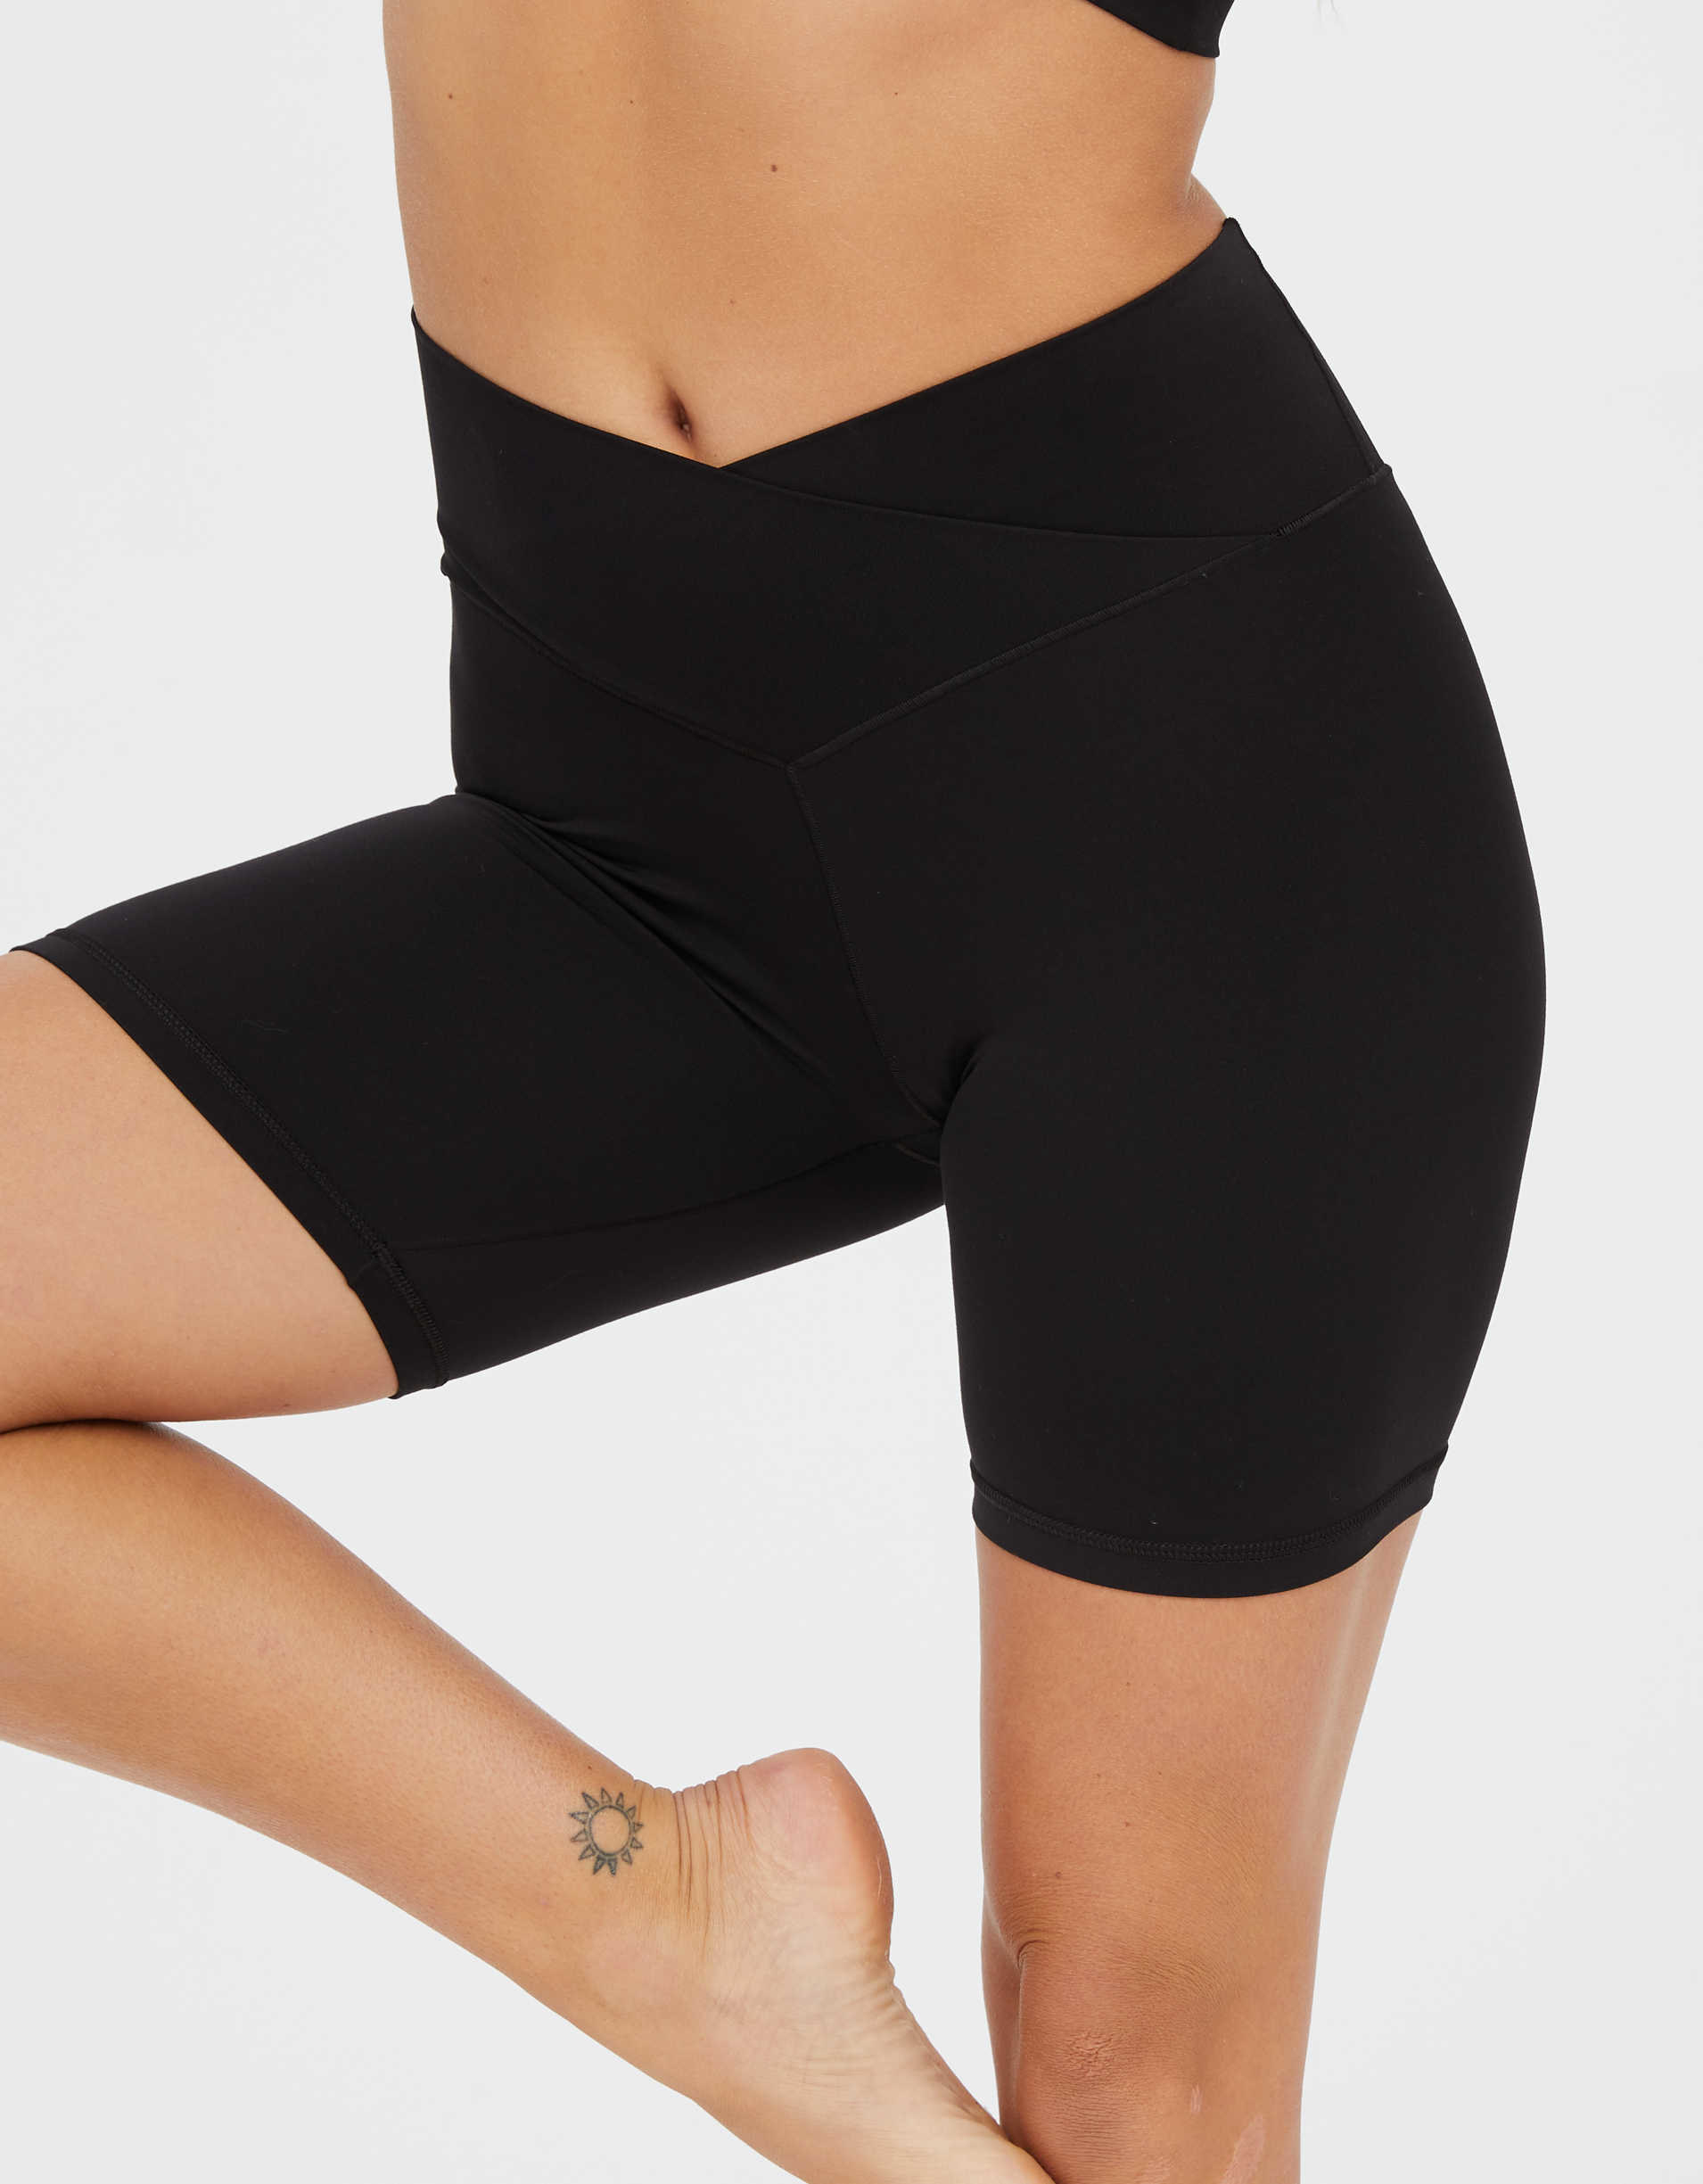 The bike shorts with a crossover waist in black